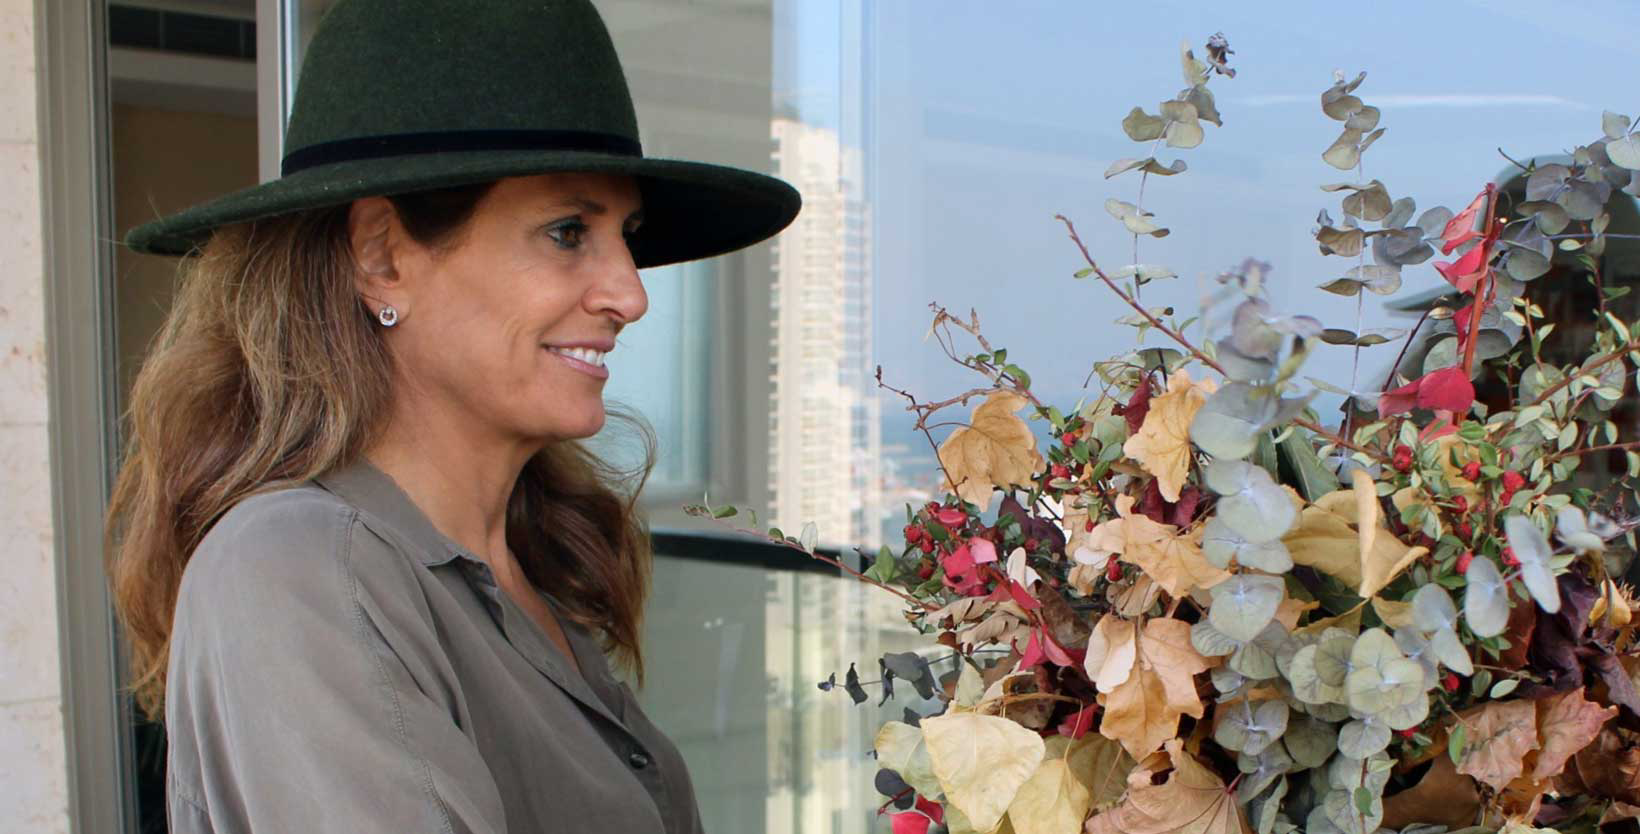 Hat matching to outfit and season